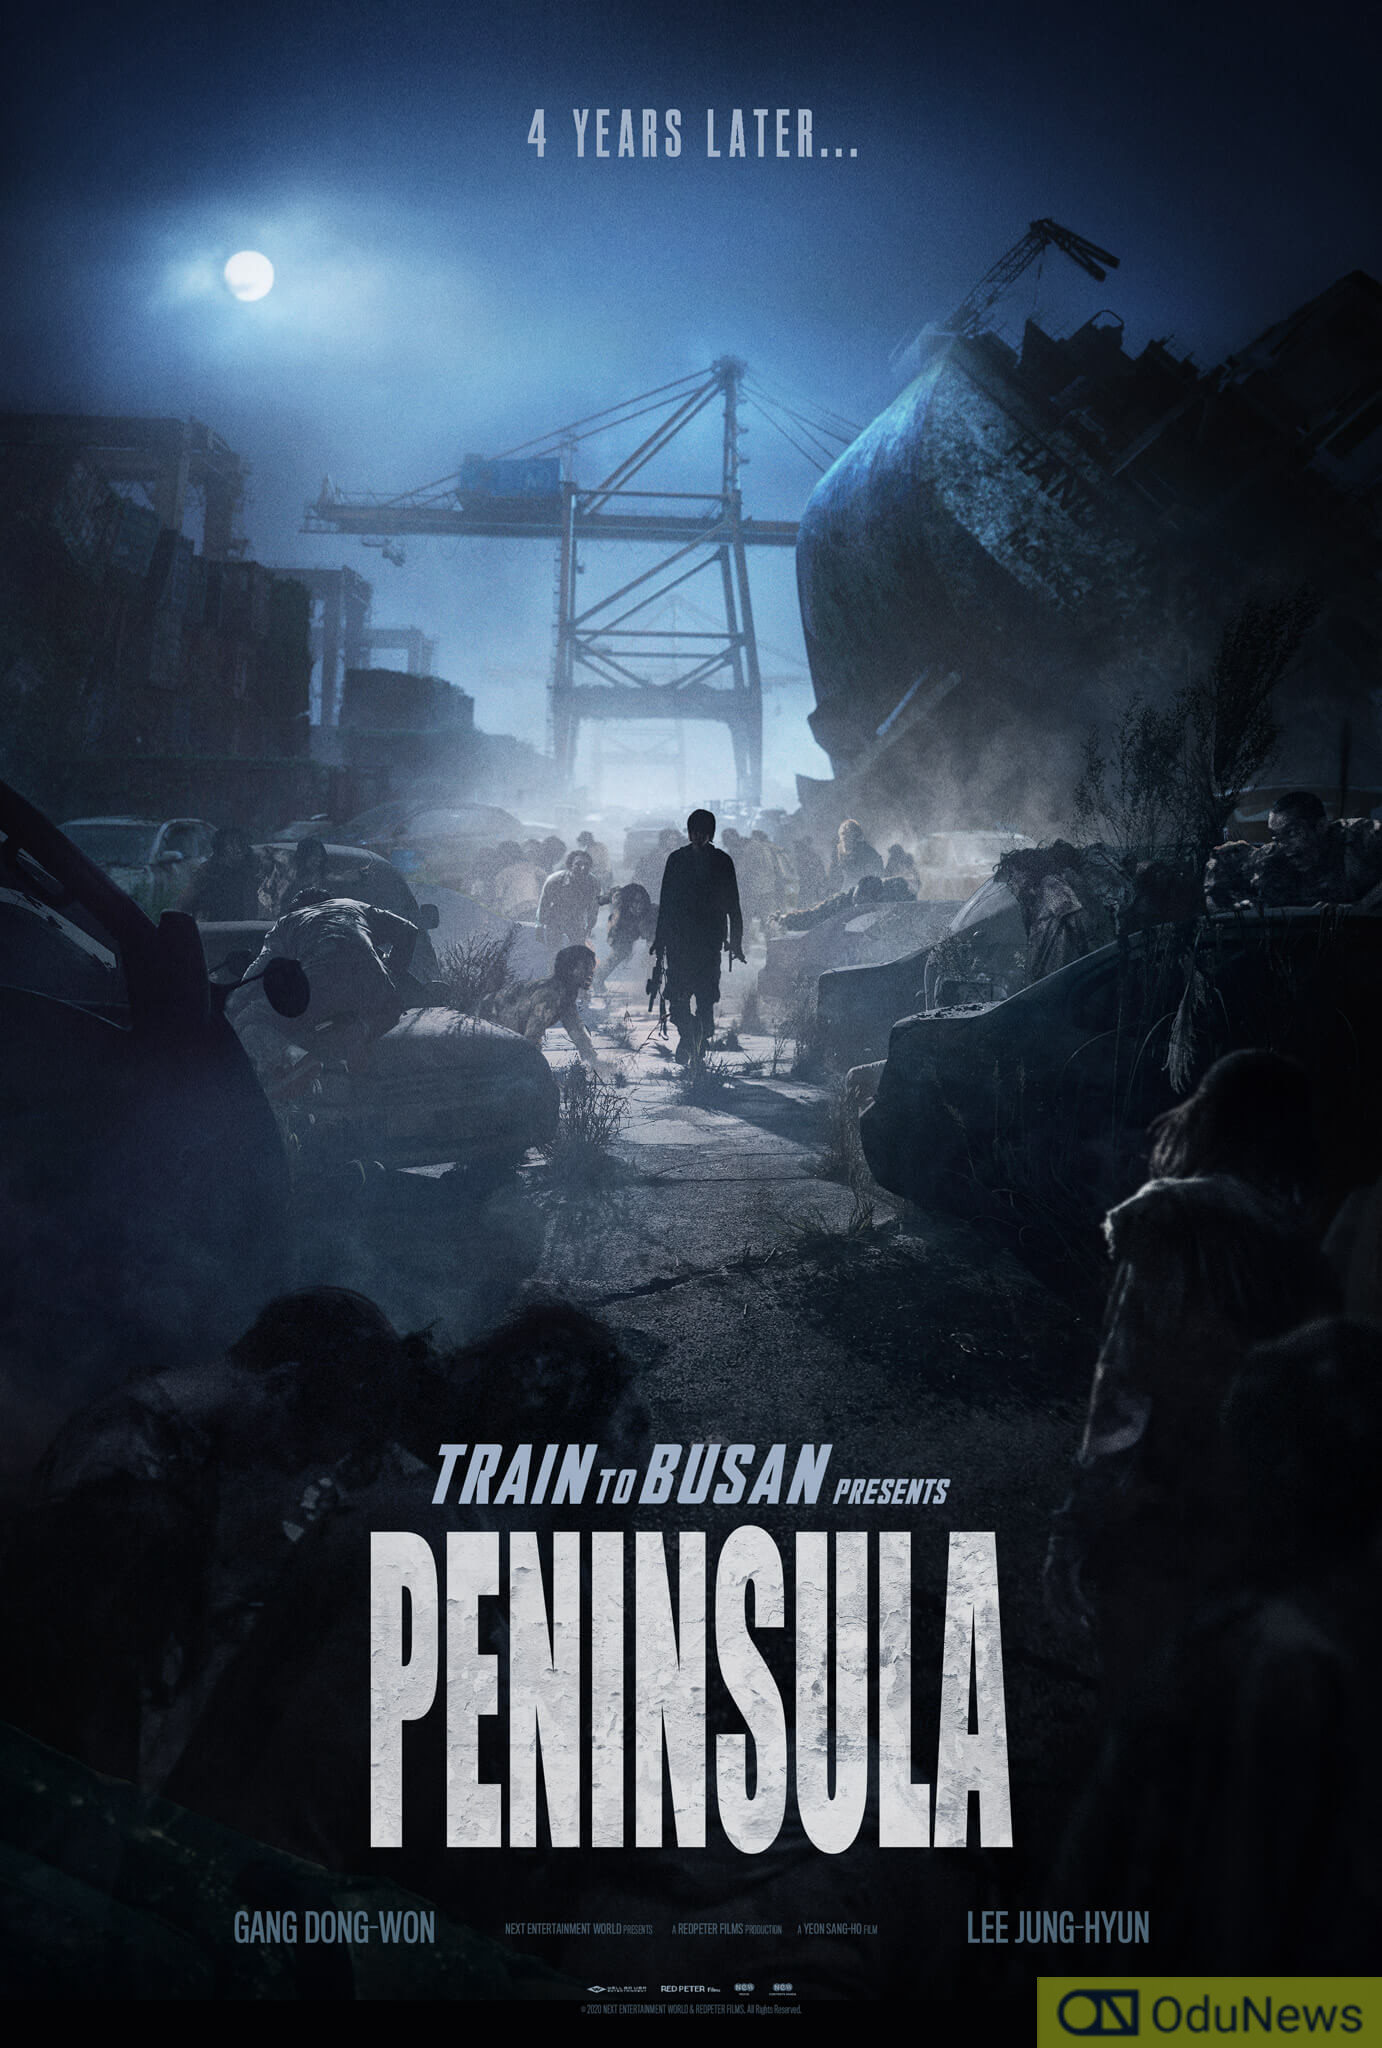 Peninsula movie poster